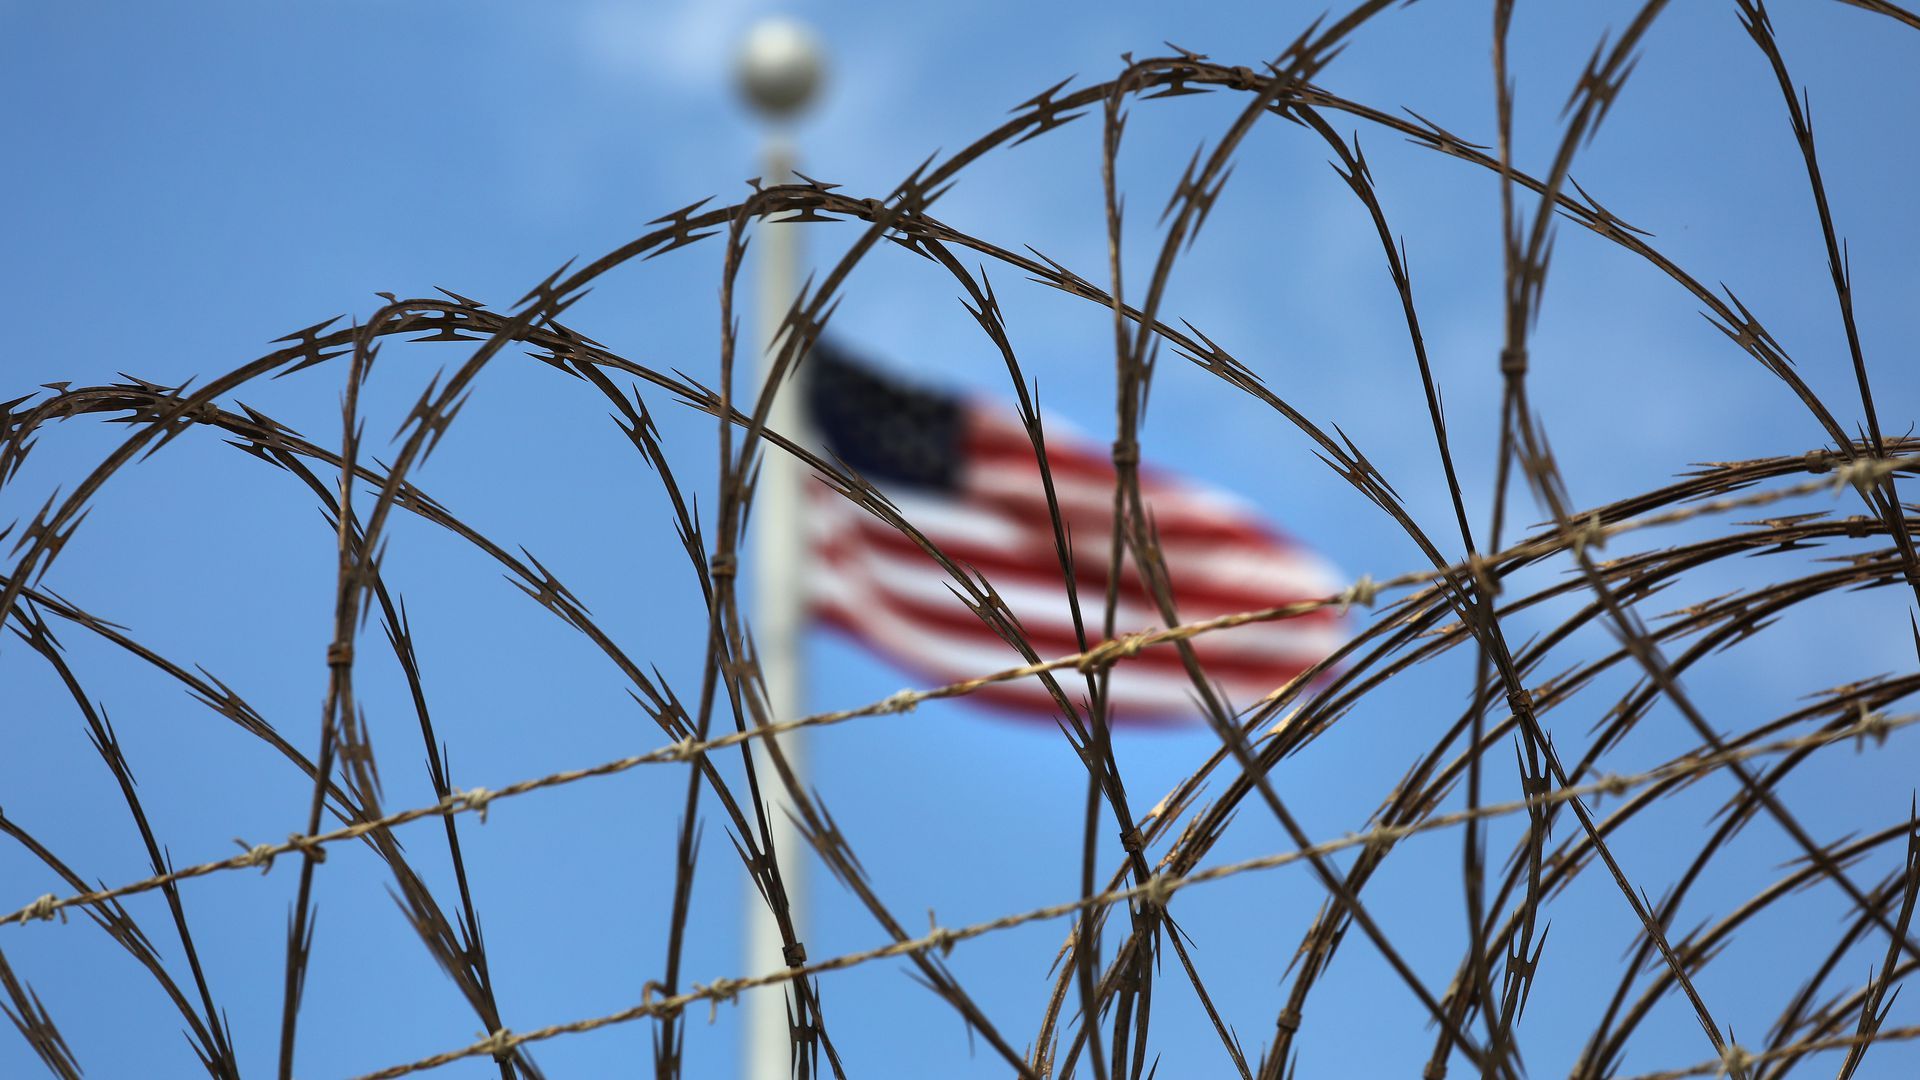 Razor wire tops the fence of the U.S. prison at Guantanamo Bay.